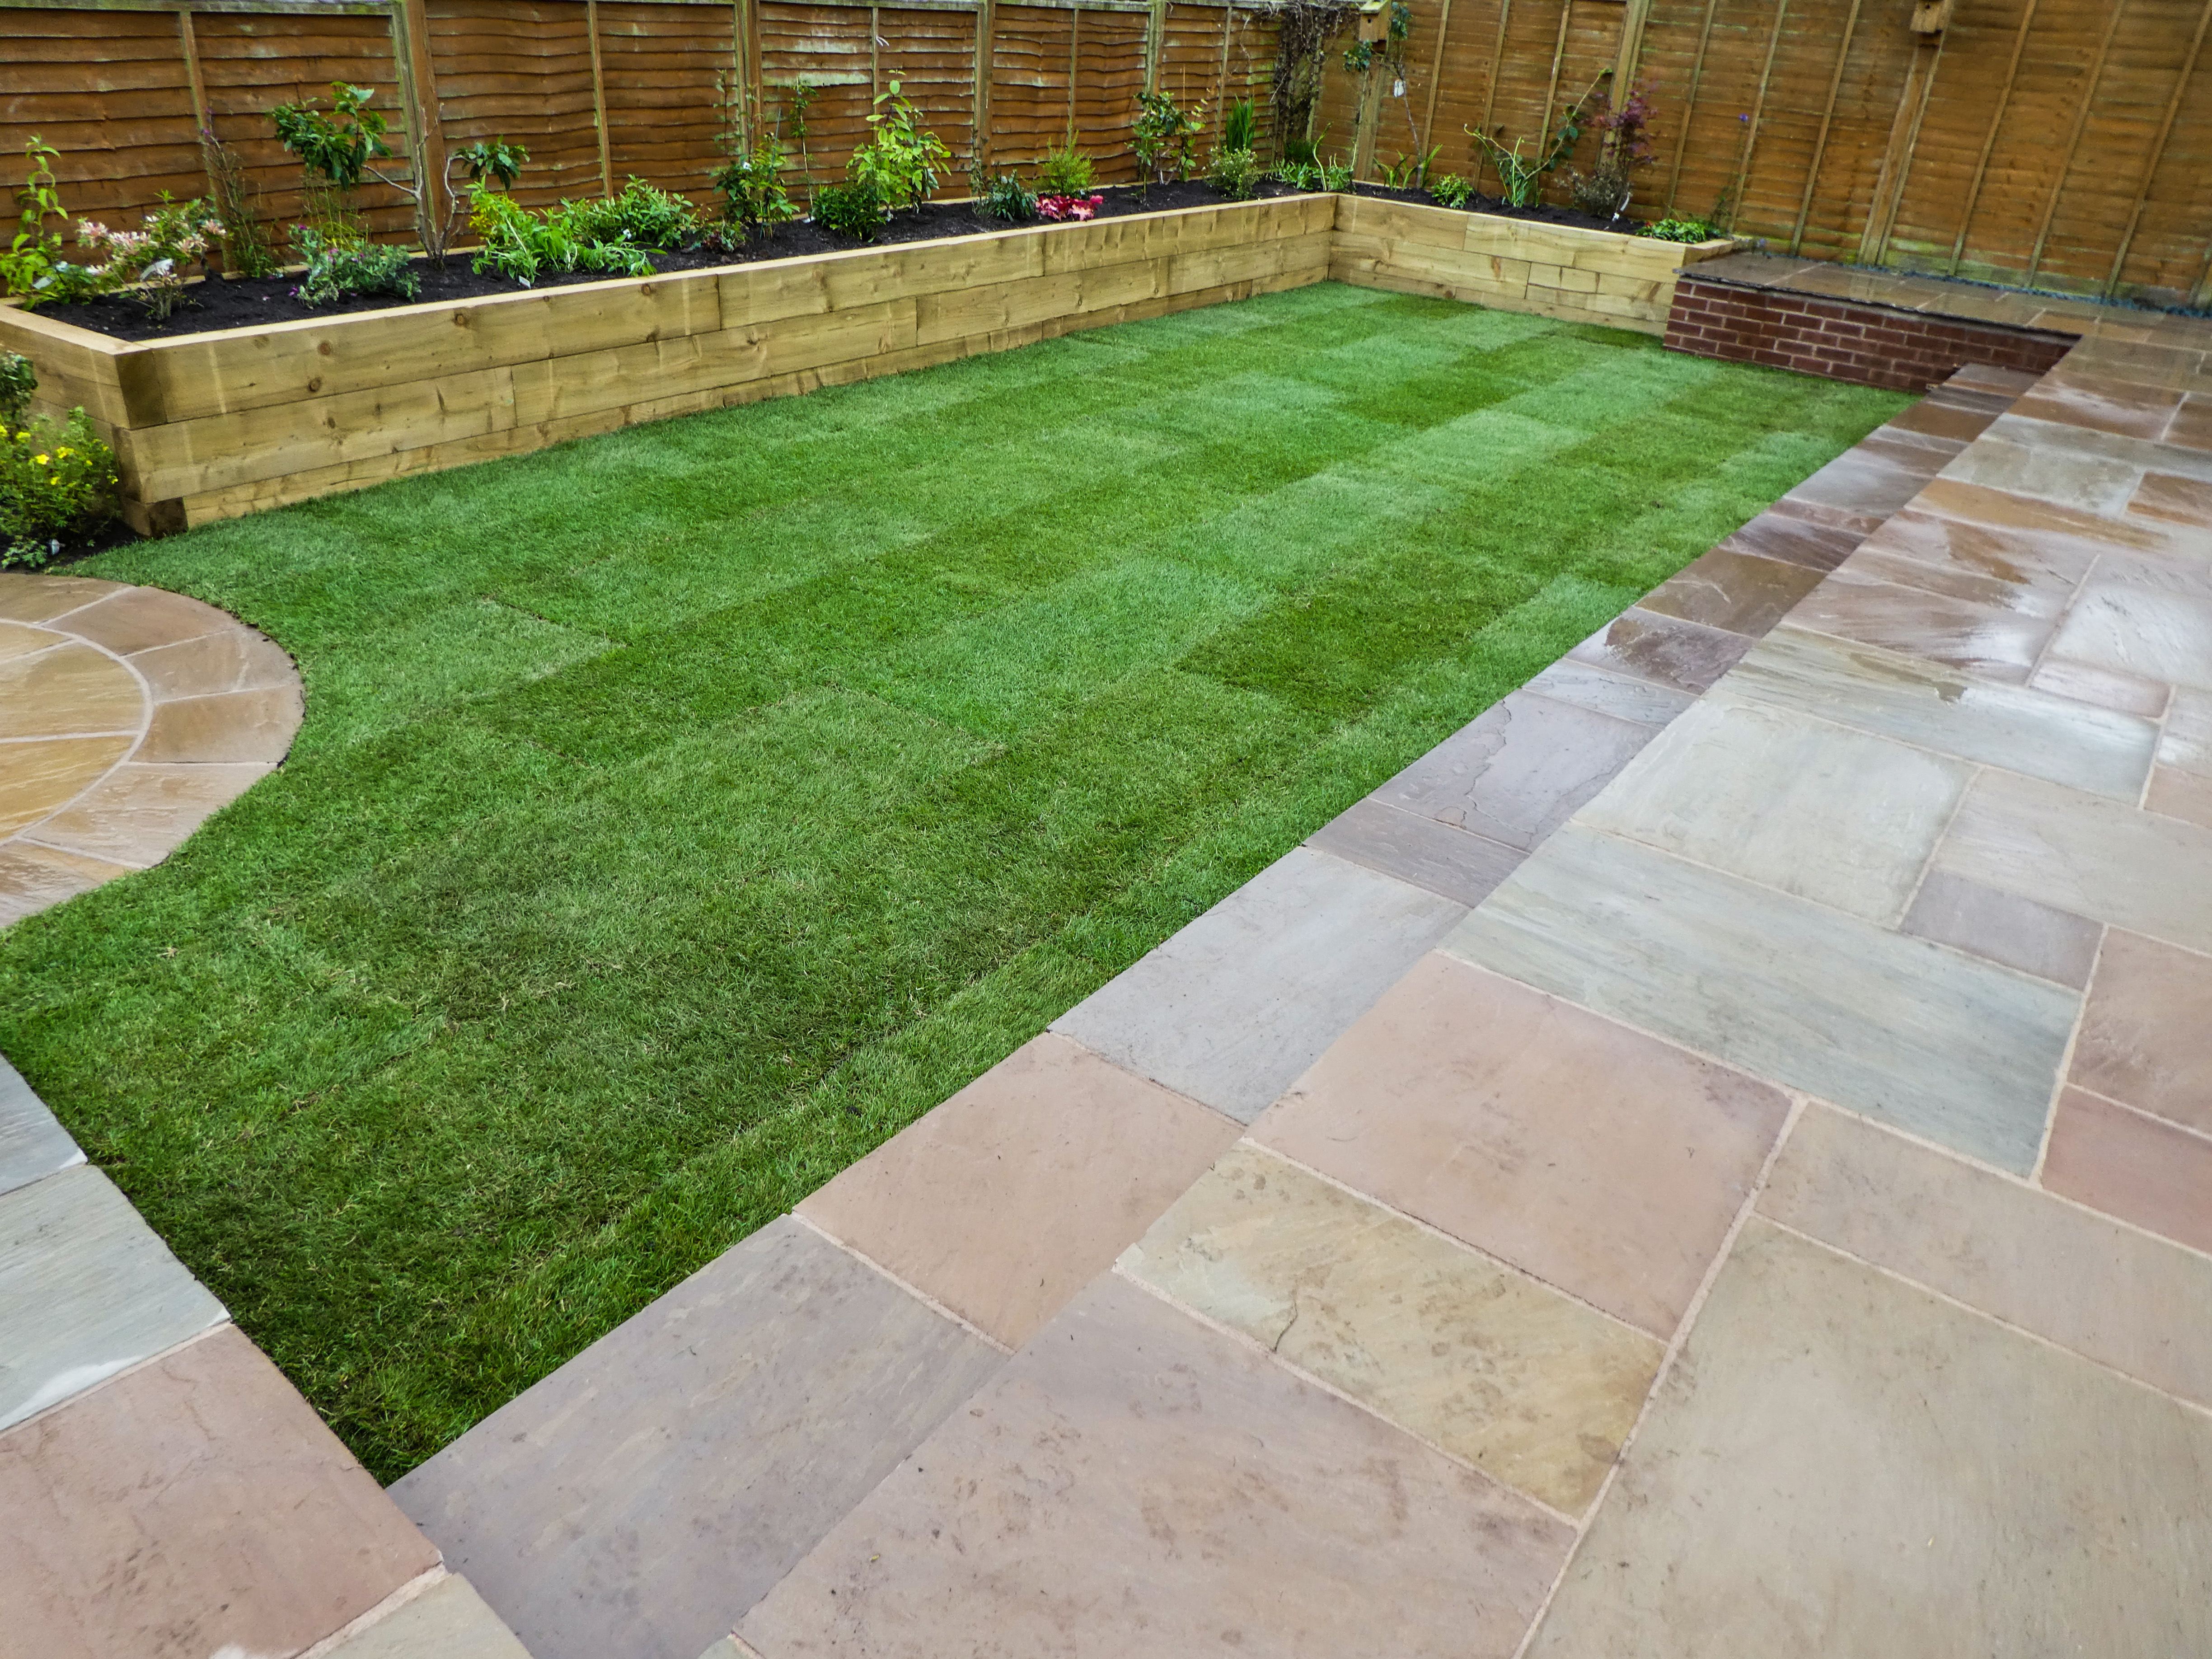 Landscaping in Westlands, Newcastle under Lyme